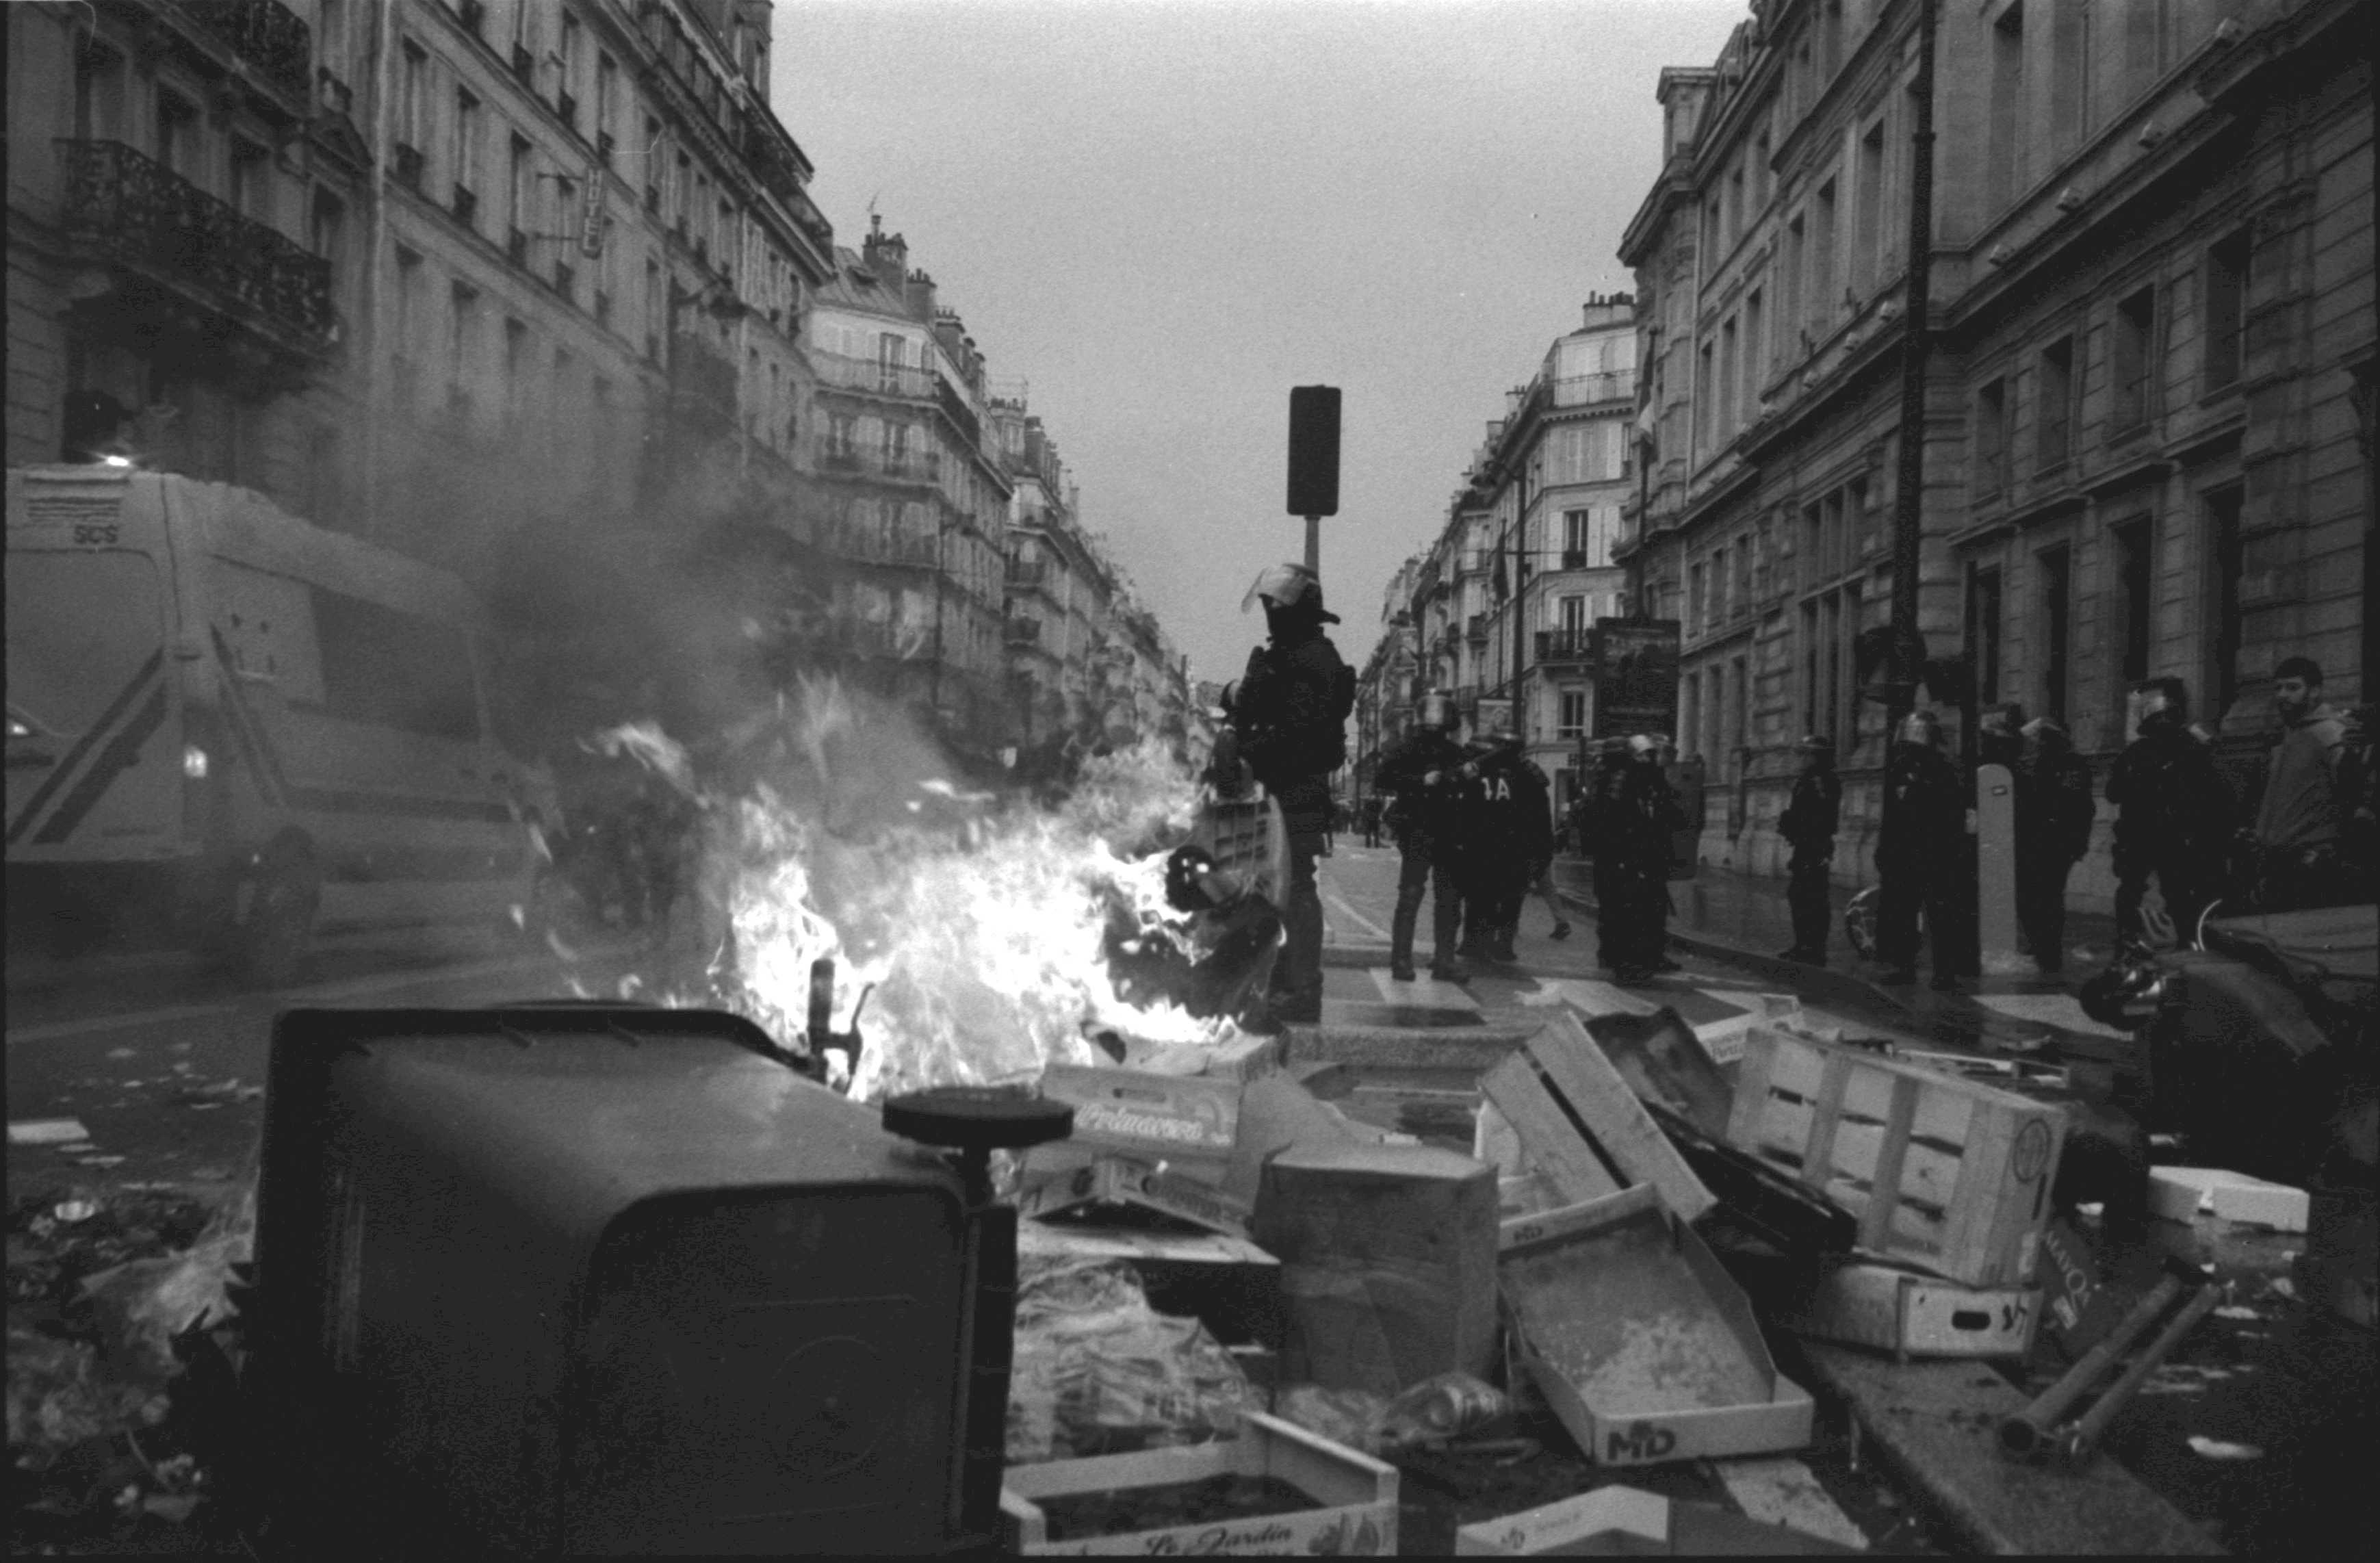 Film photo courtesy of Lev Bourliot | French police stand by burning trash in a market street after chasing away protesters.